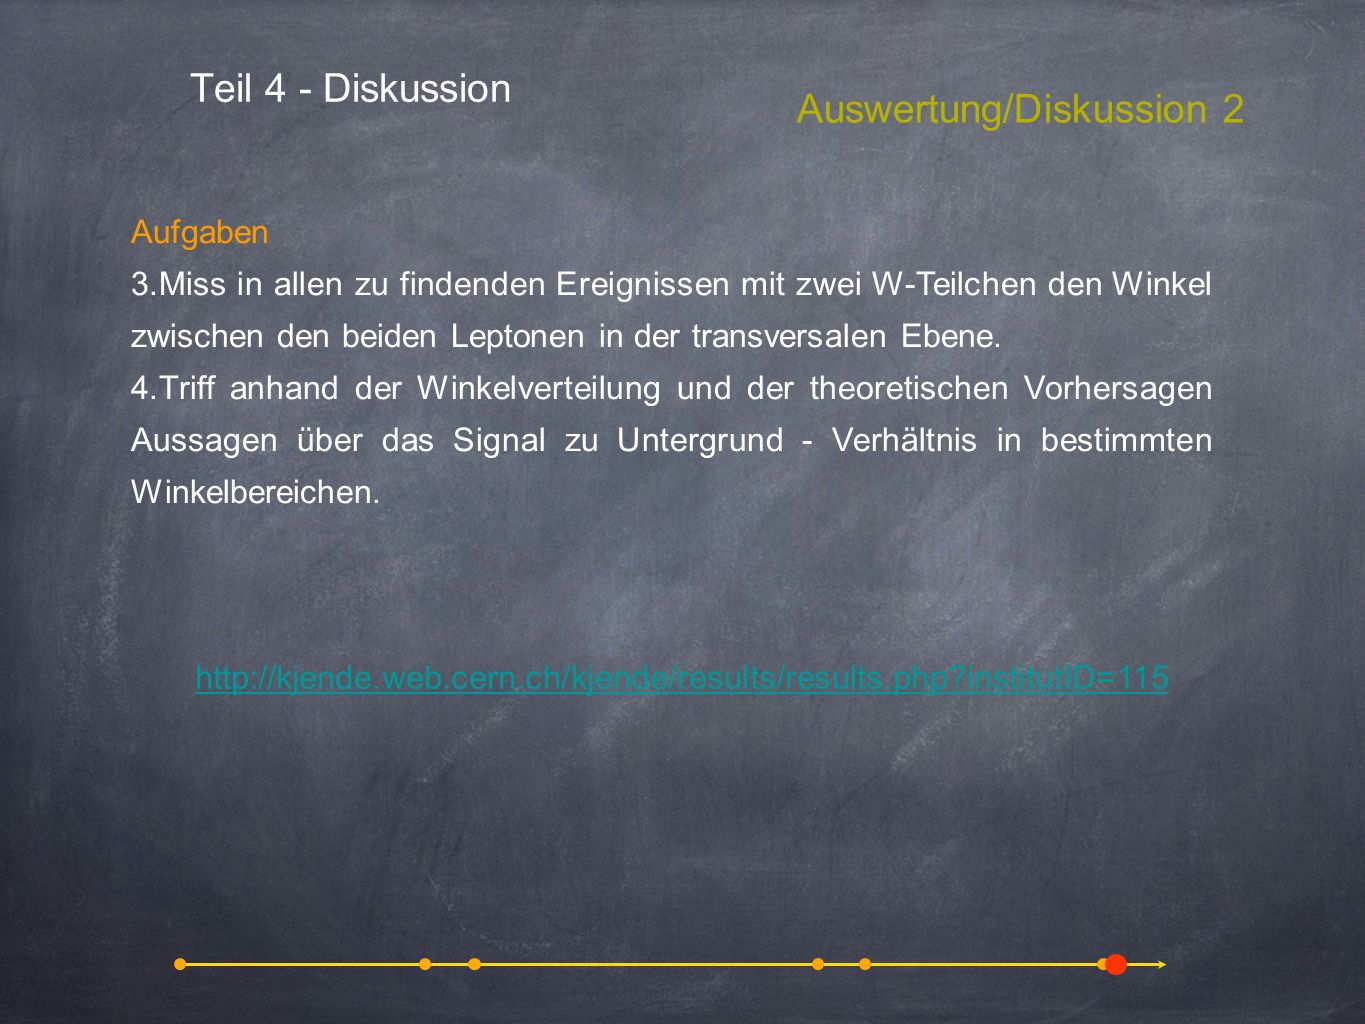 Auswertung/Diskussion 2